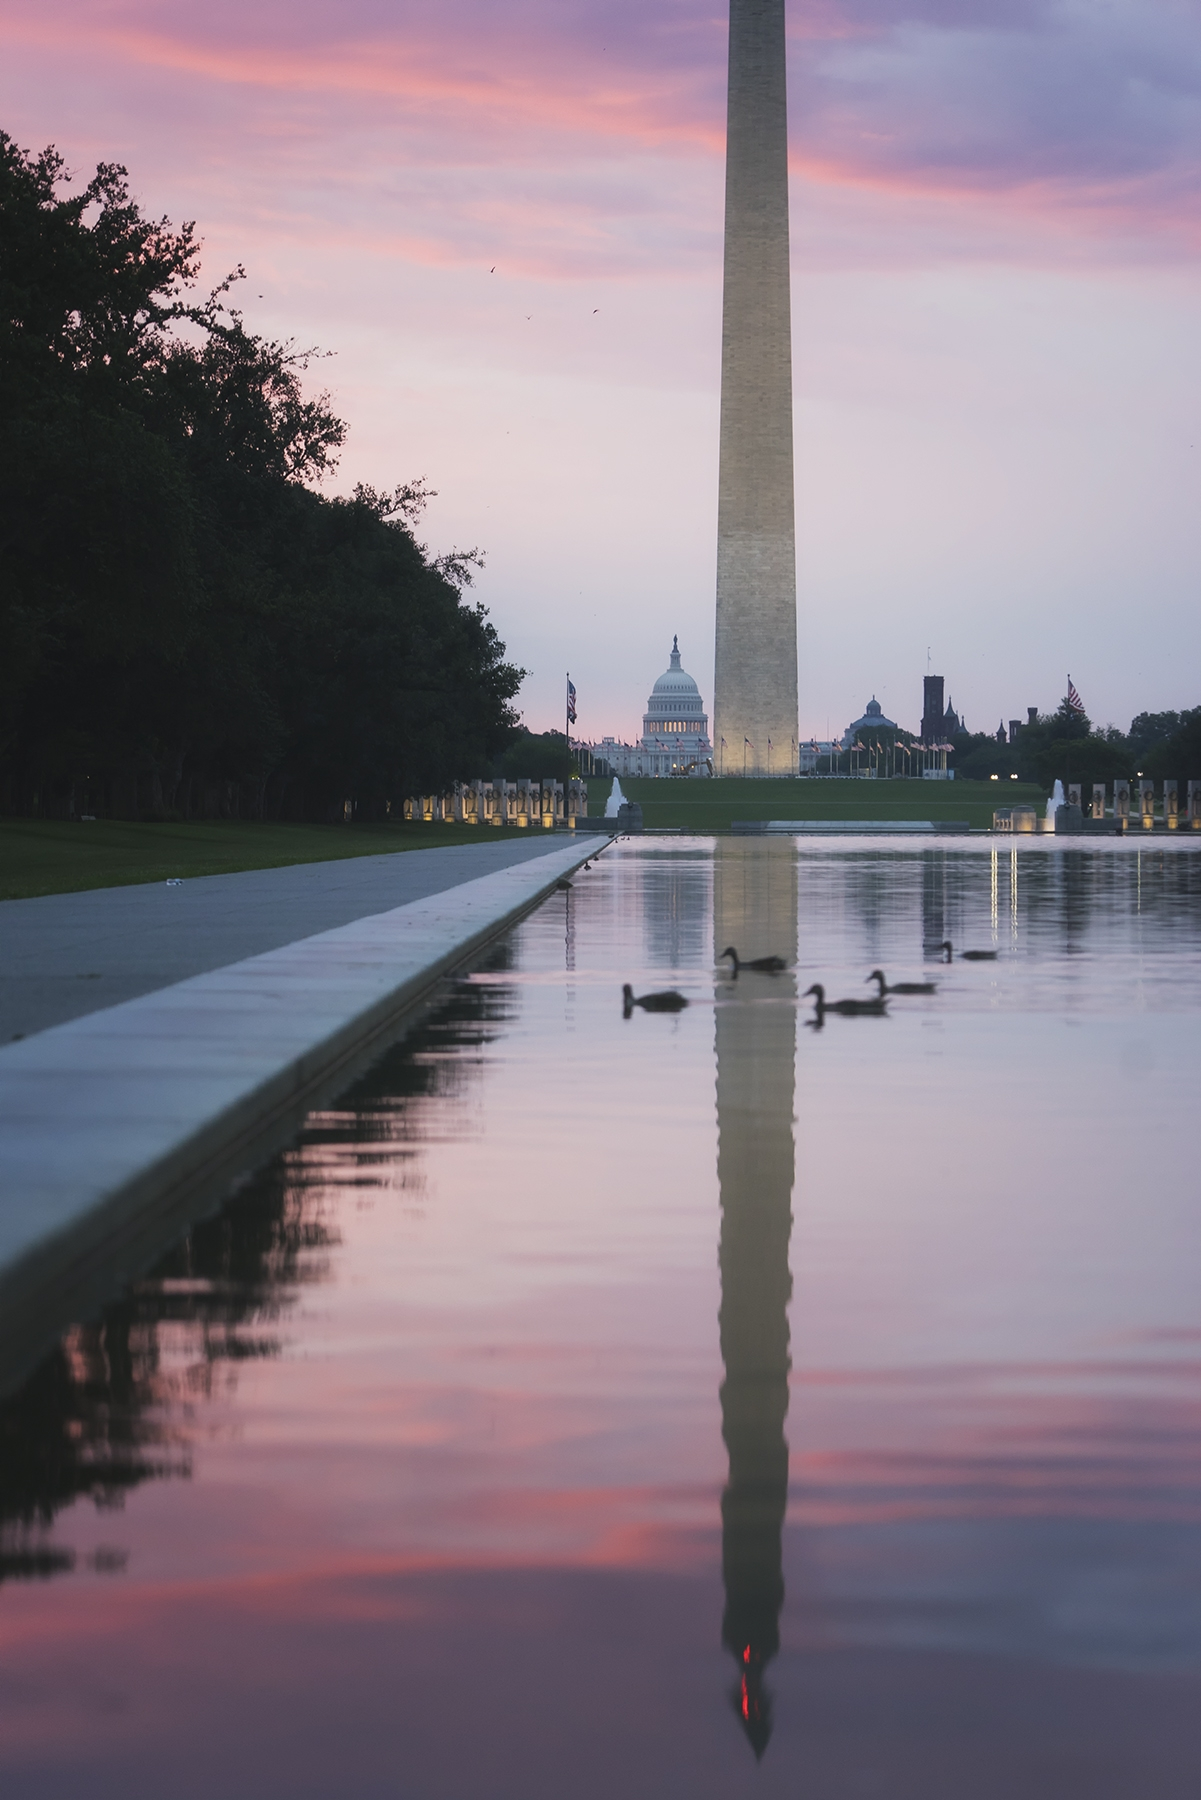 Reflecting Pool, washington dc, national mall, sunrise, pink, purple, ducks, washington monument, us capitol, summer, humid, hot, weather, reflection, wwii memorial, location, photo challenge